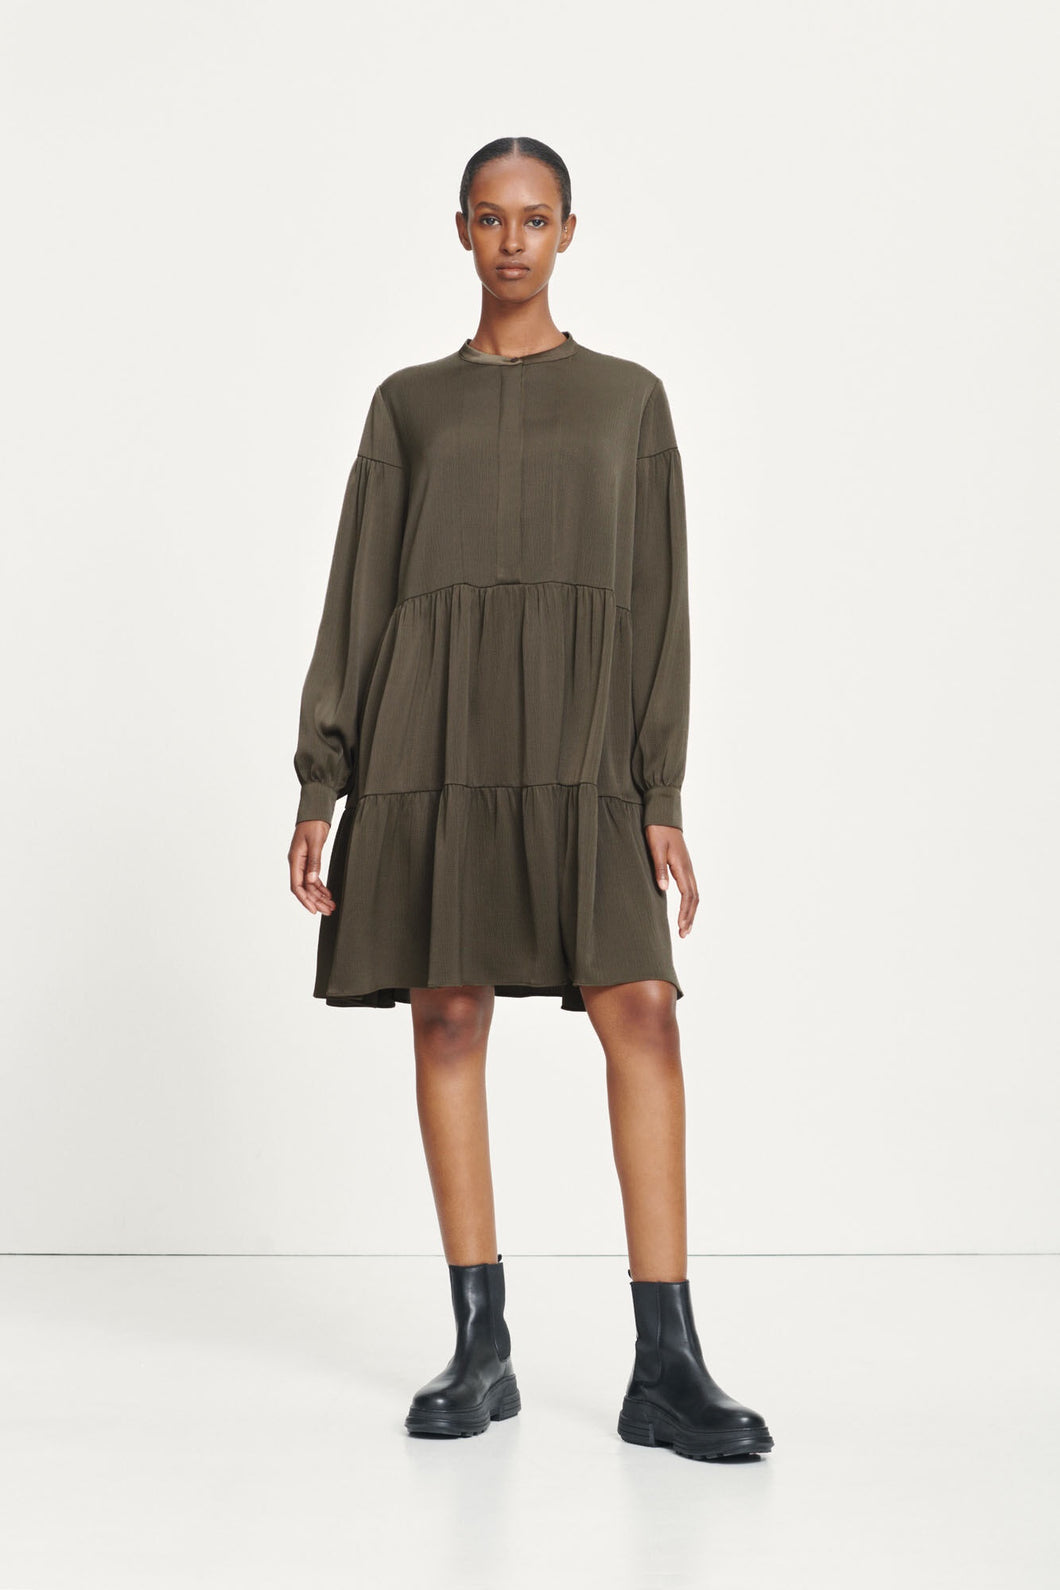 Samsøe Samsøe - Margo Shirt Dress - Black Olive